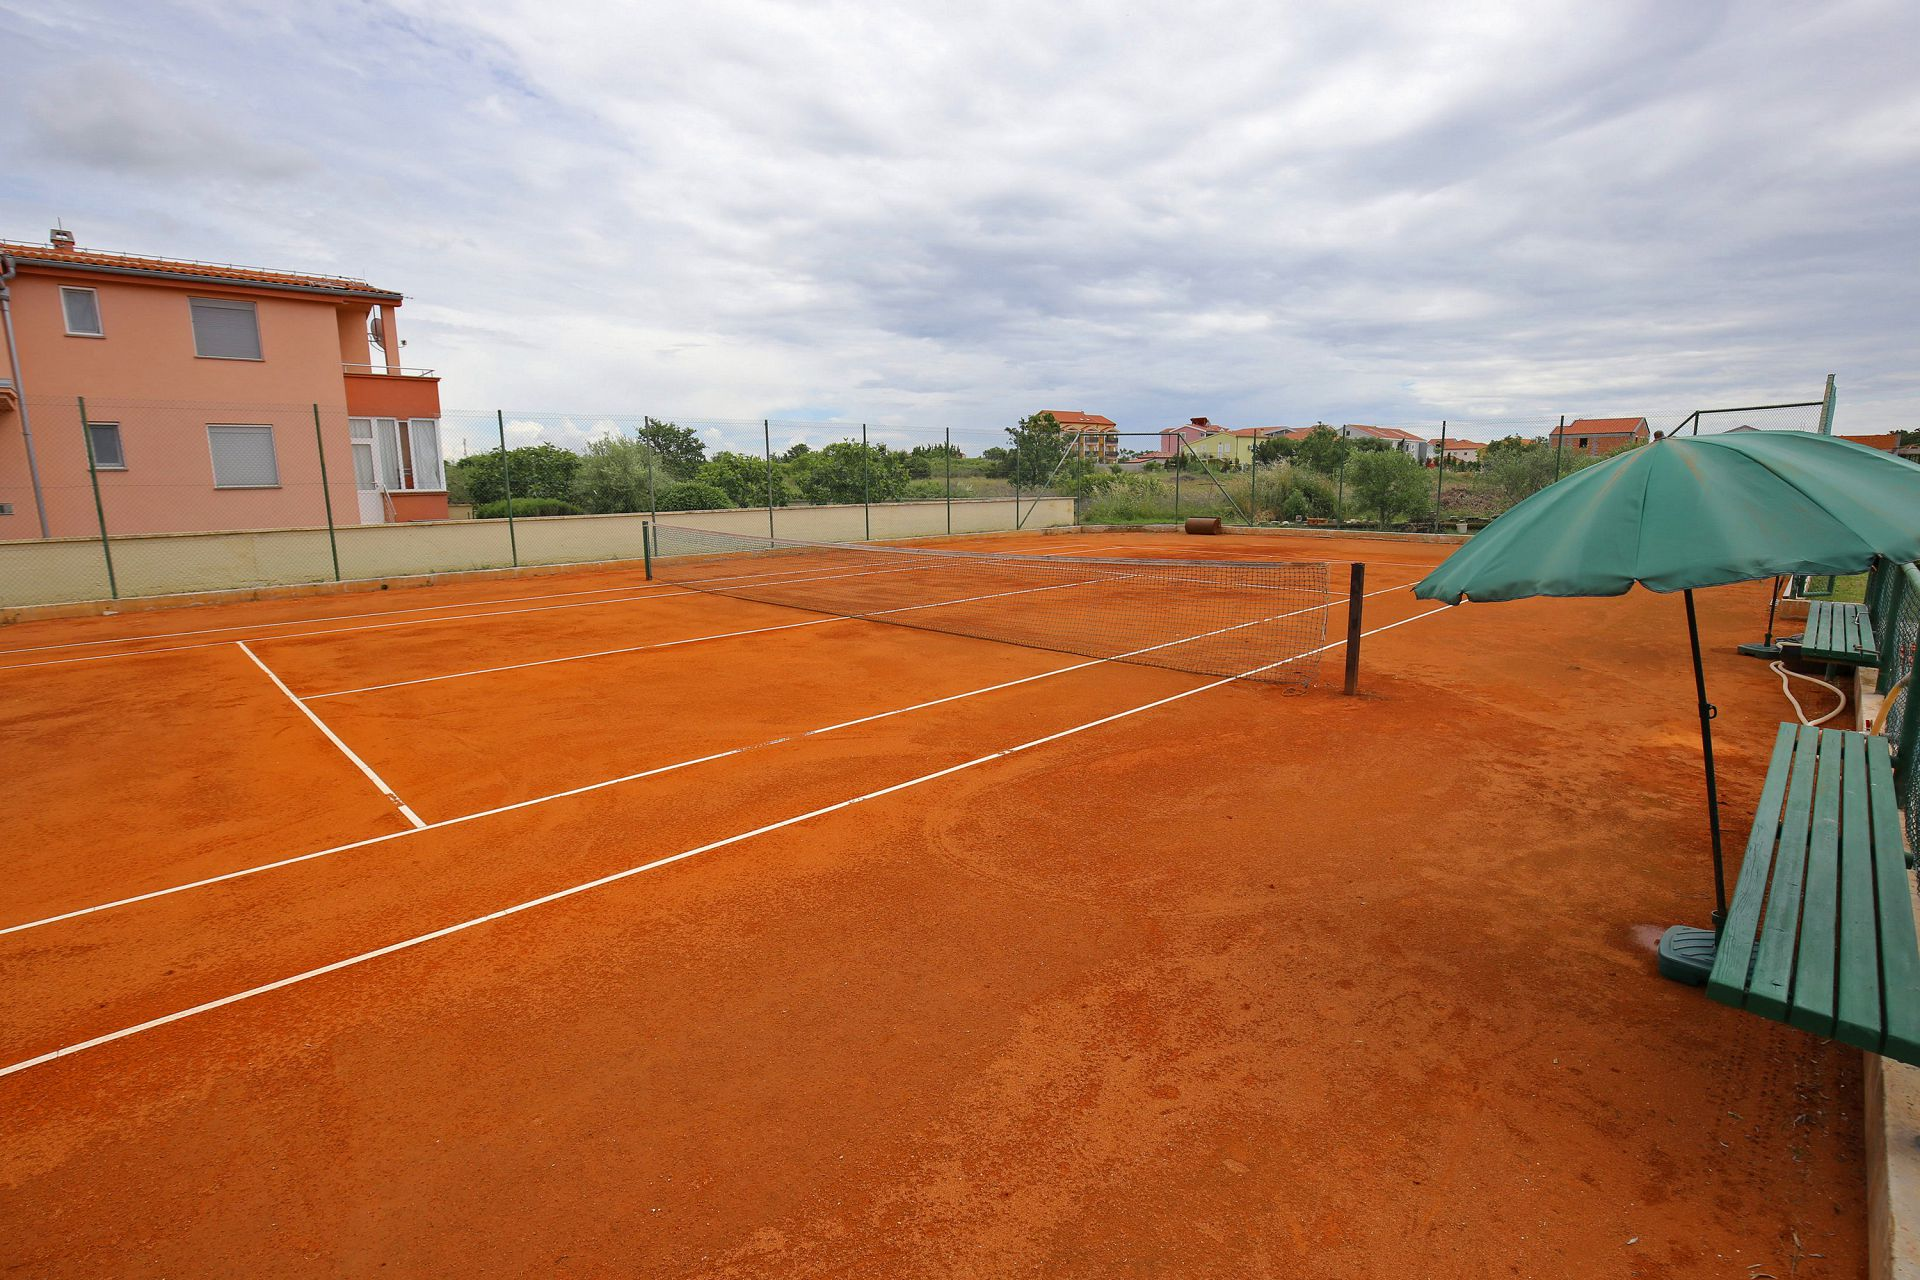 00418ZATZ - Zaton (Zadar) - Apartments Croatia - tennis court